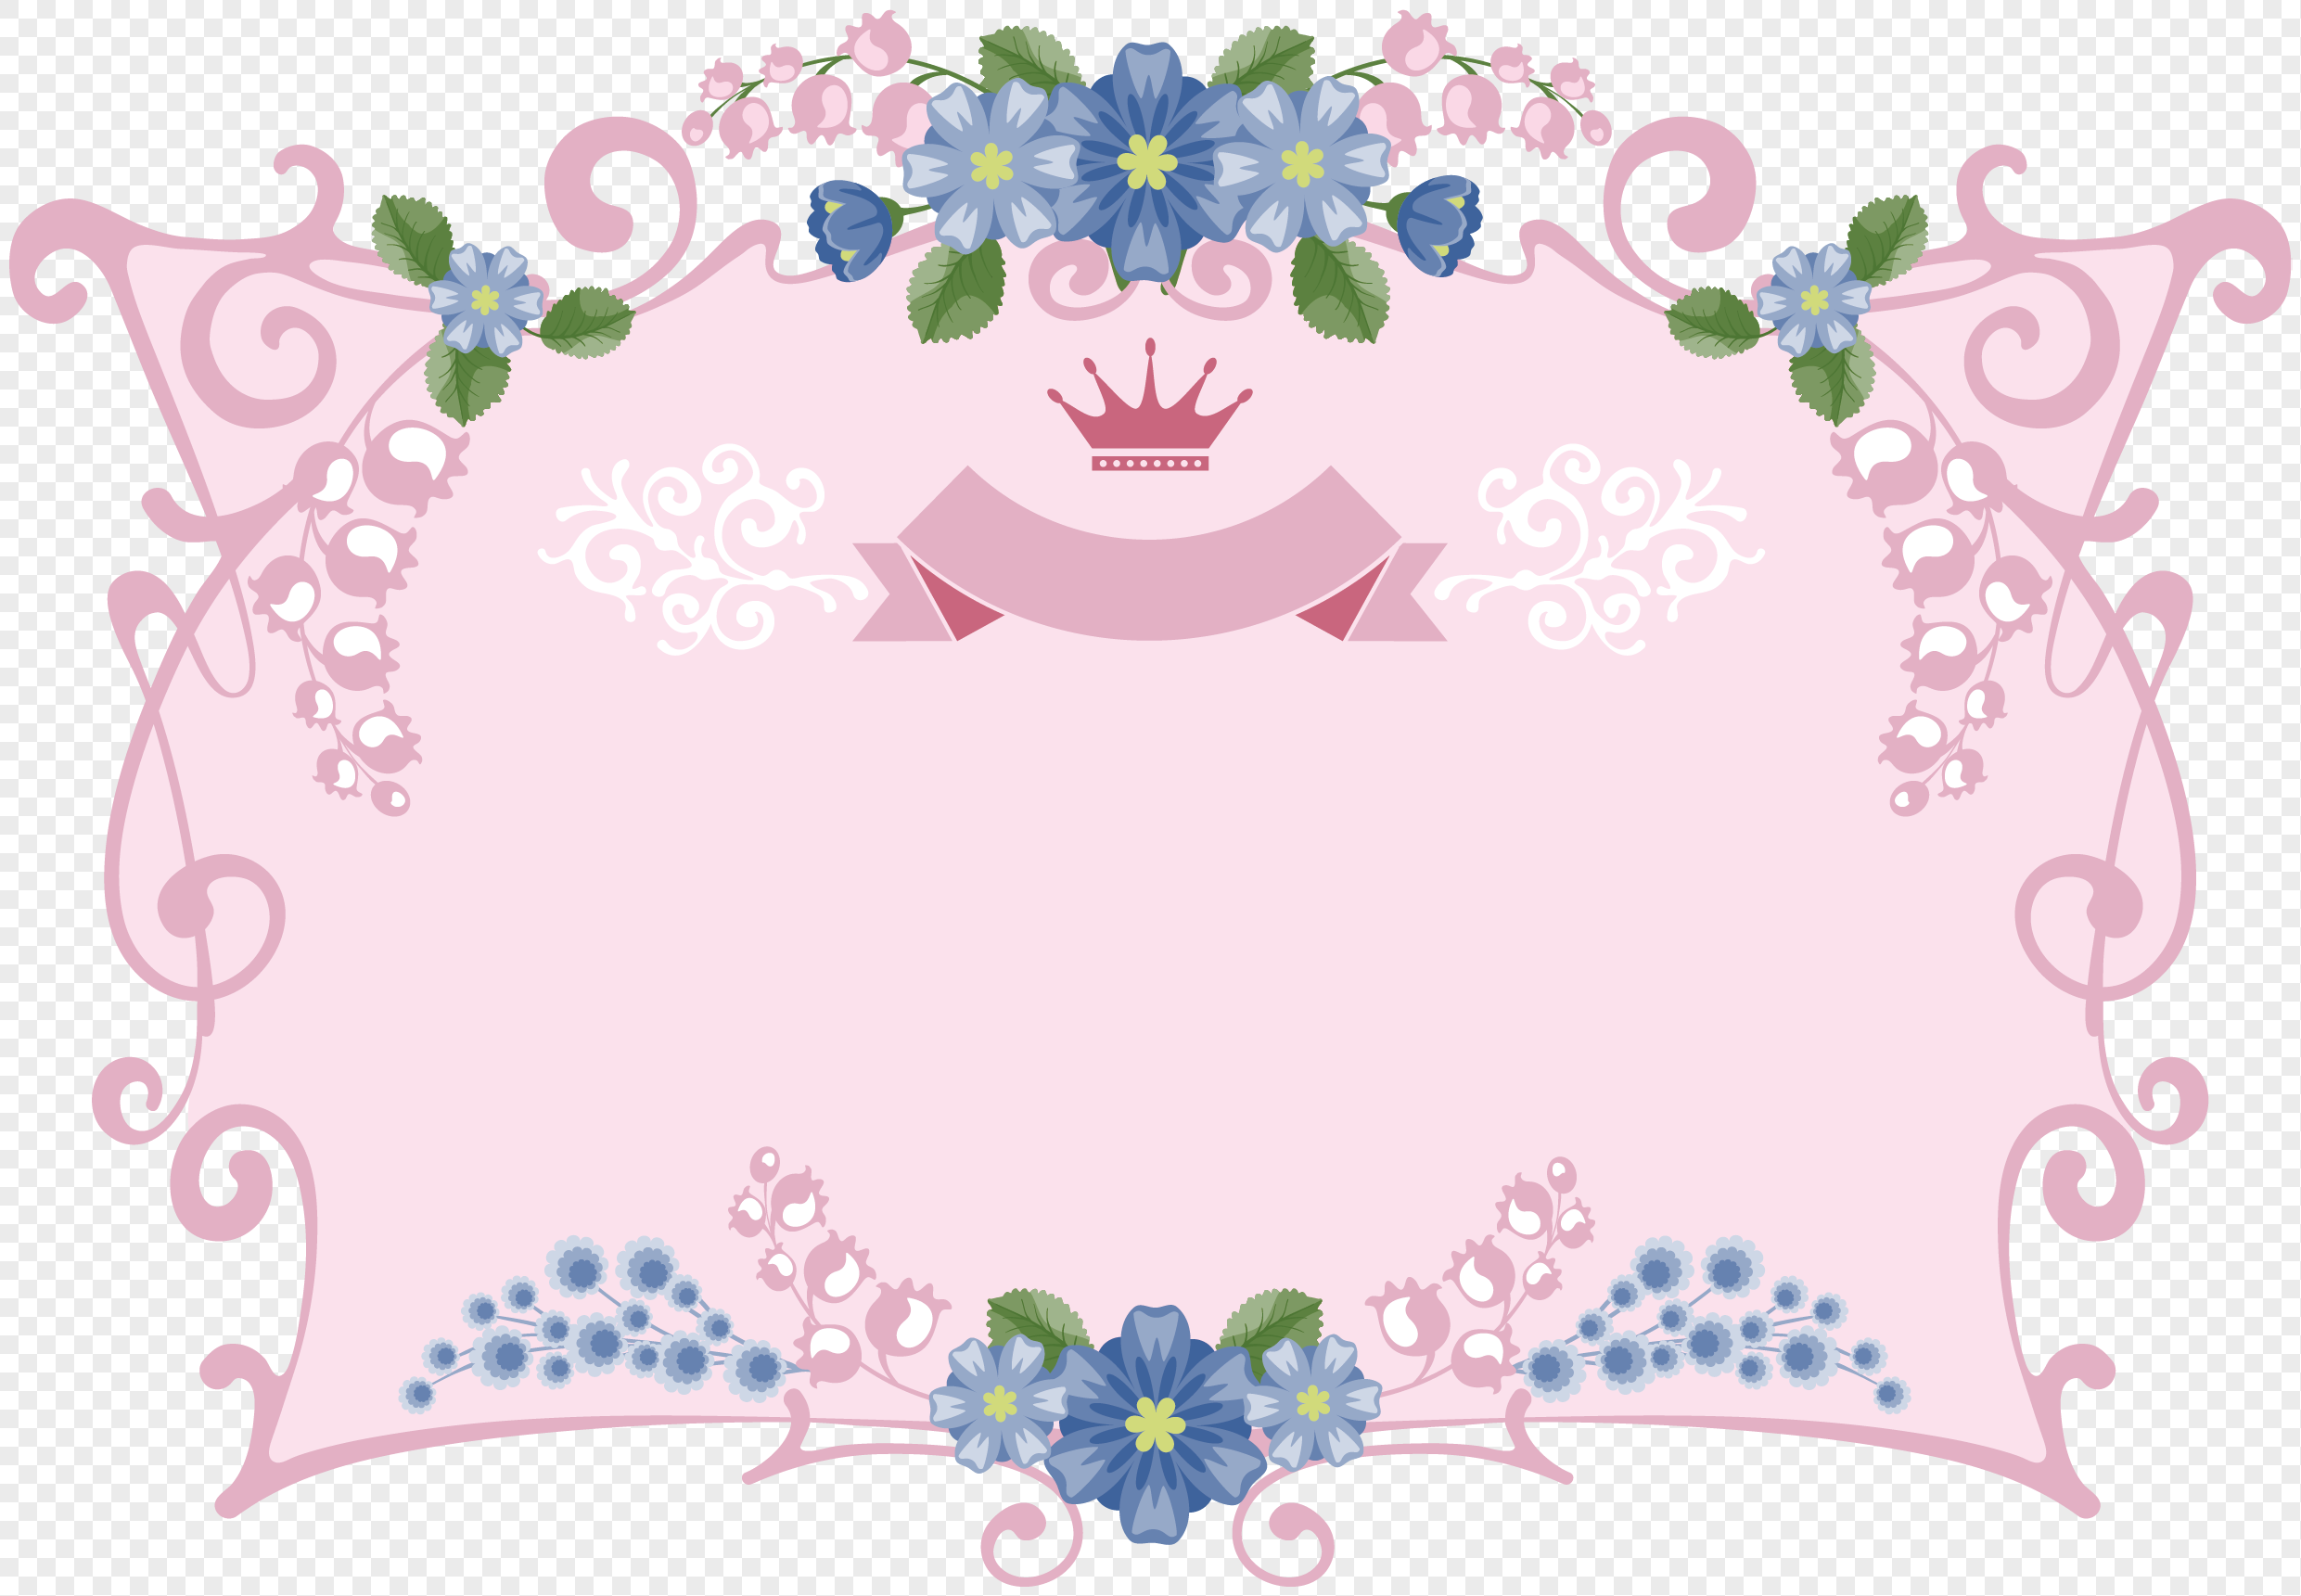 Pink Flowers Decorate Decorative Border Elements Png Imagepicture